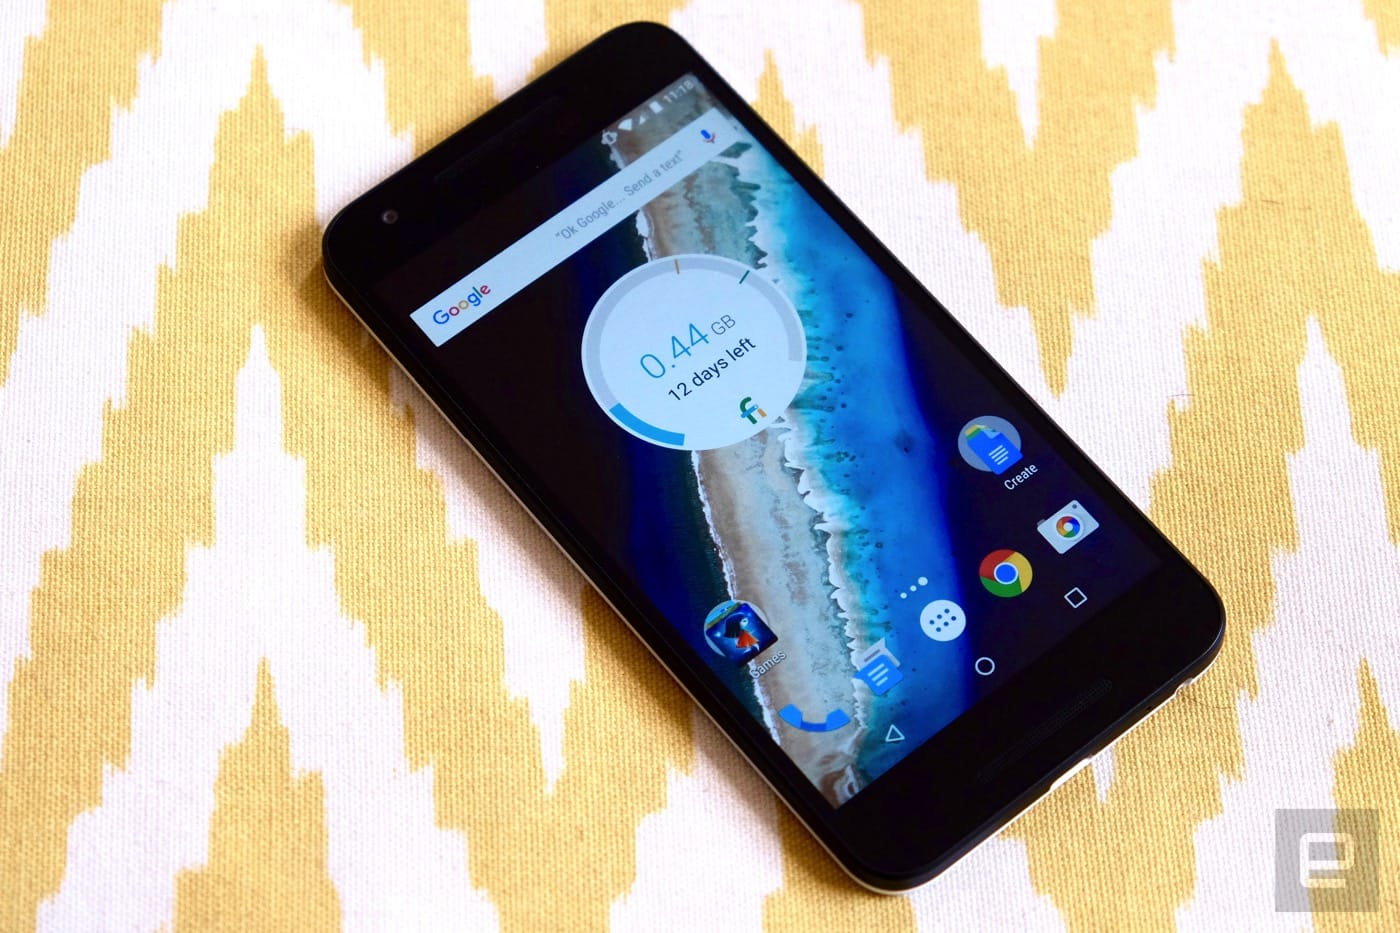 Google's Project Fi international data service goes down